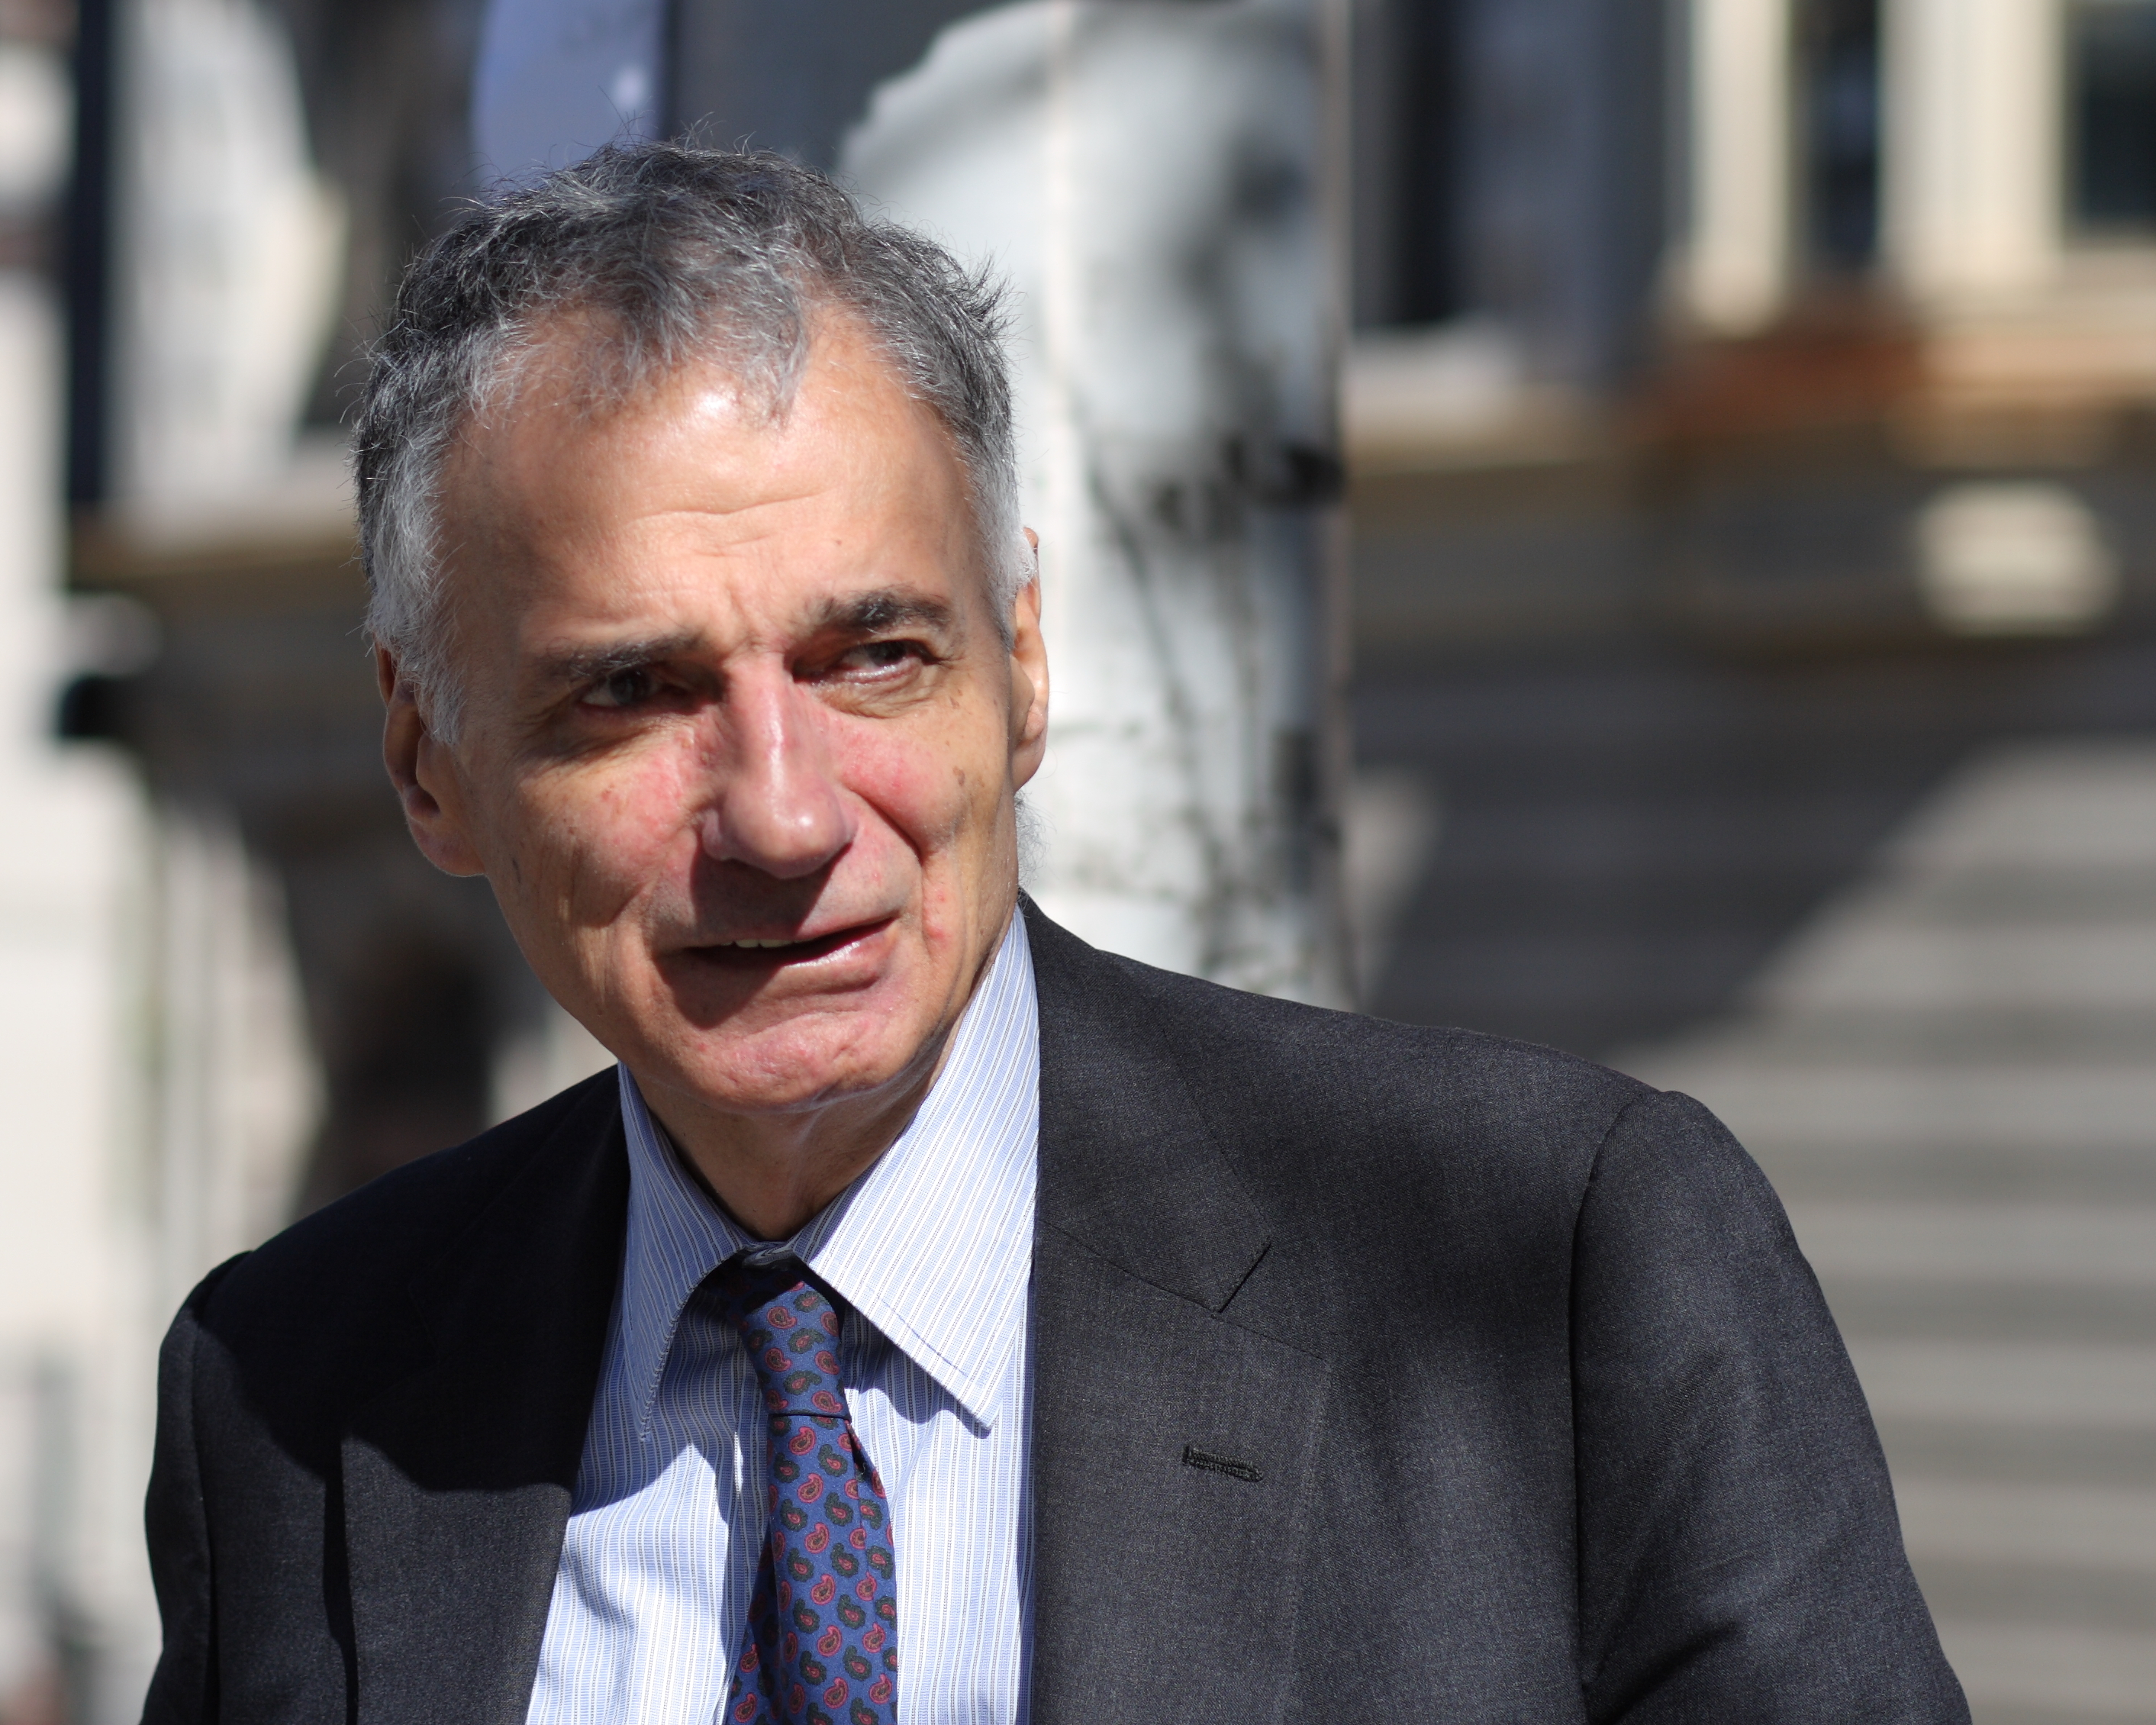 the life and work of ralph nader Because of ralph nader we drive safer cars, eat healthier food, breathe better air, drink cleaner water, and work in safer environments the early years ralph nader was born in winsted, connecticut on february 27, 1934, to rose.